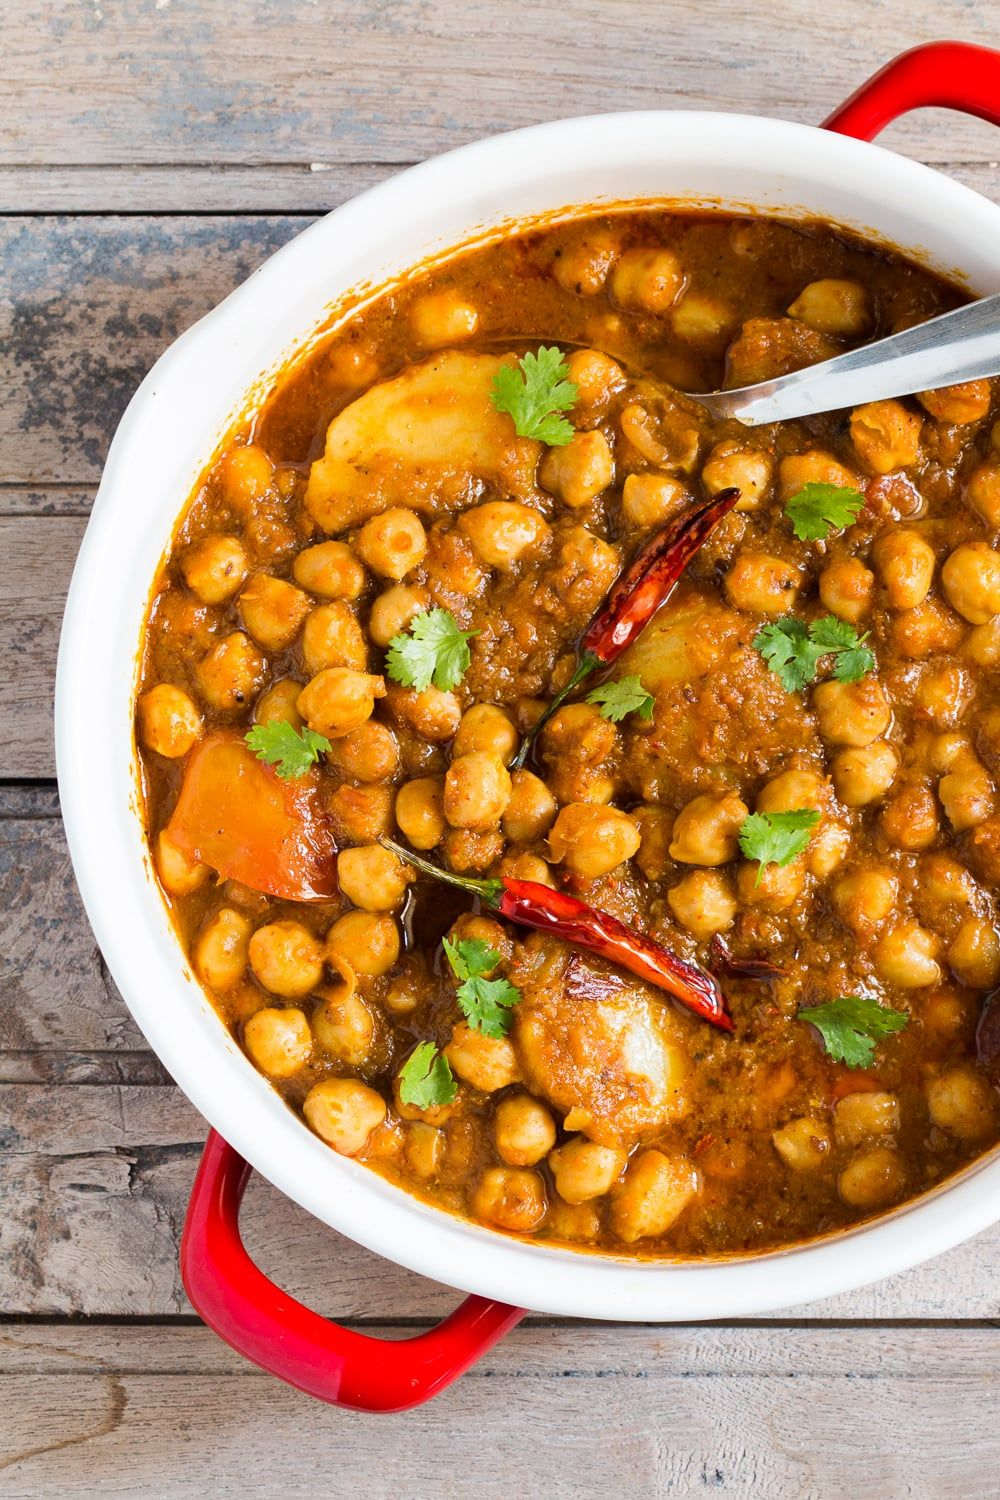 Chana Aloo Or Chhole Aloo Masala Spicy Chickpeas And Potato Curry